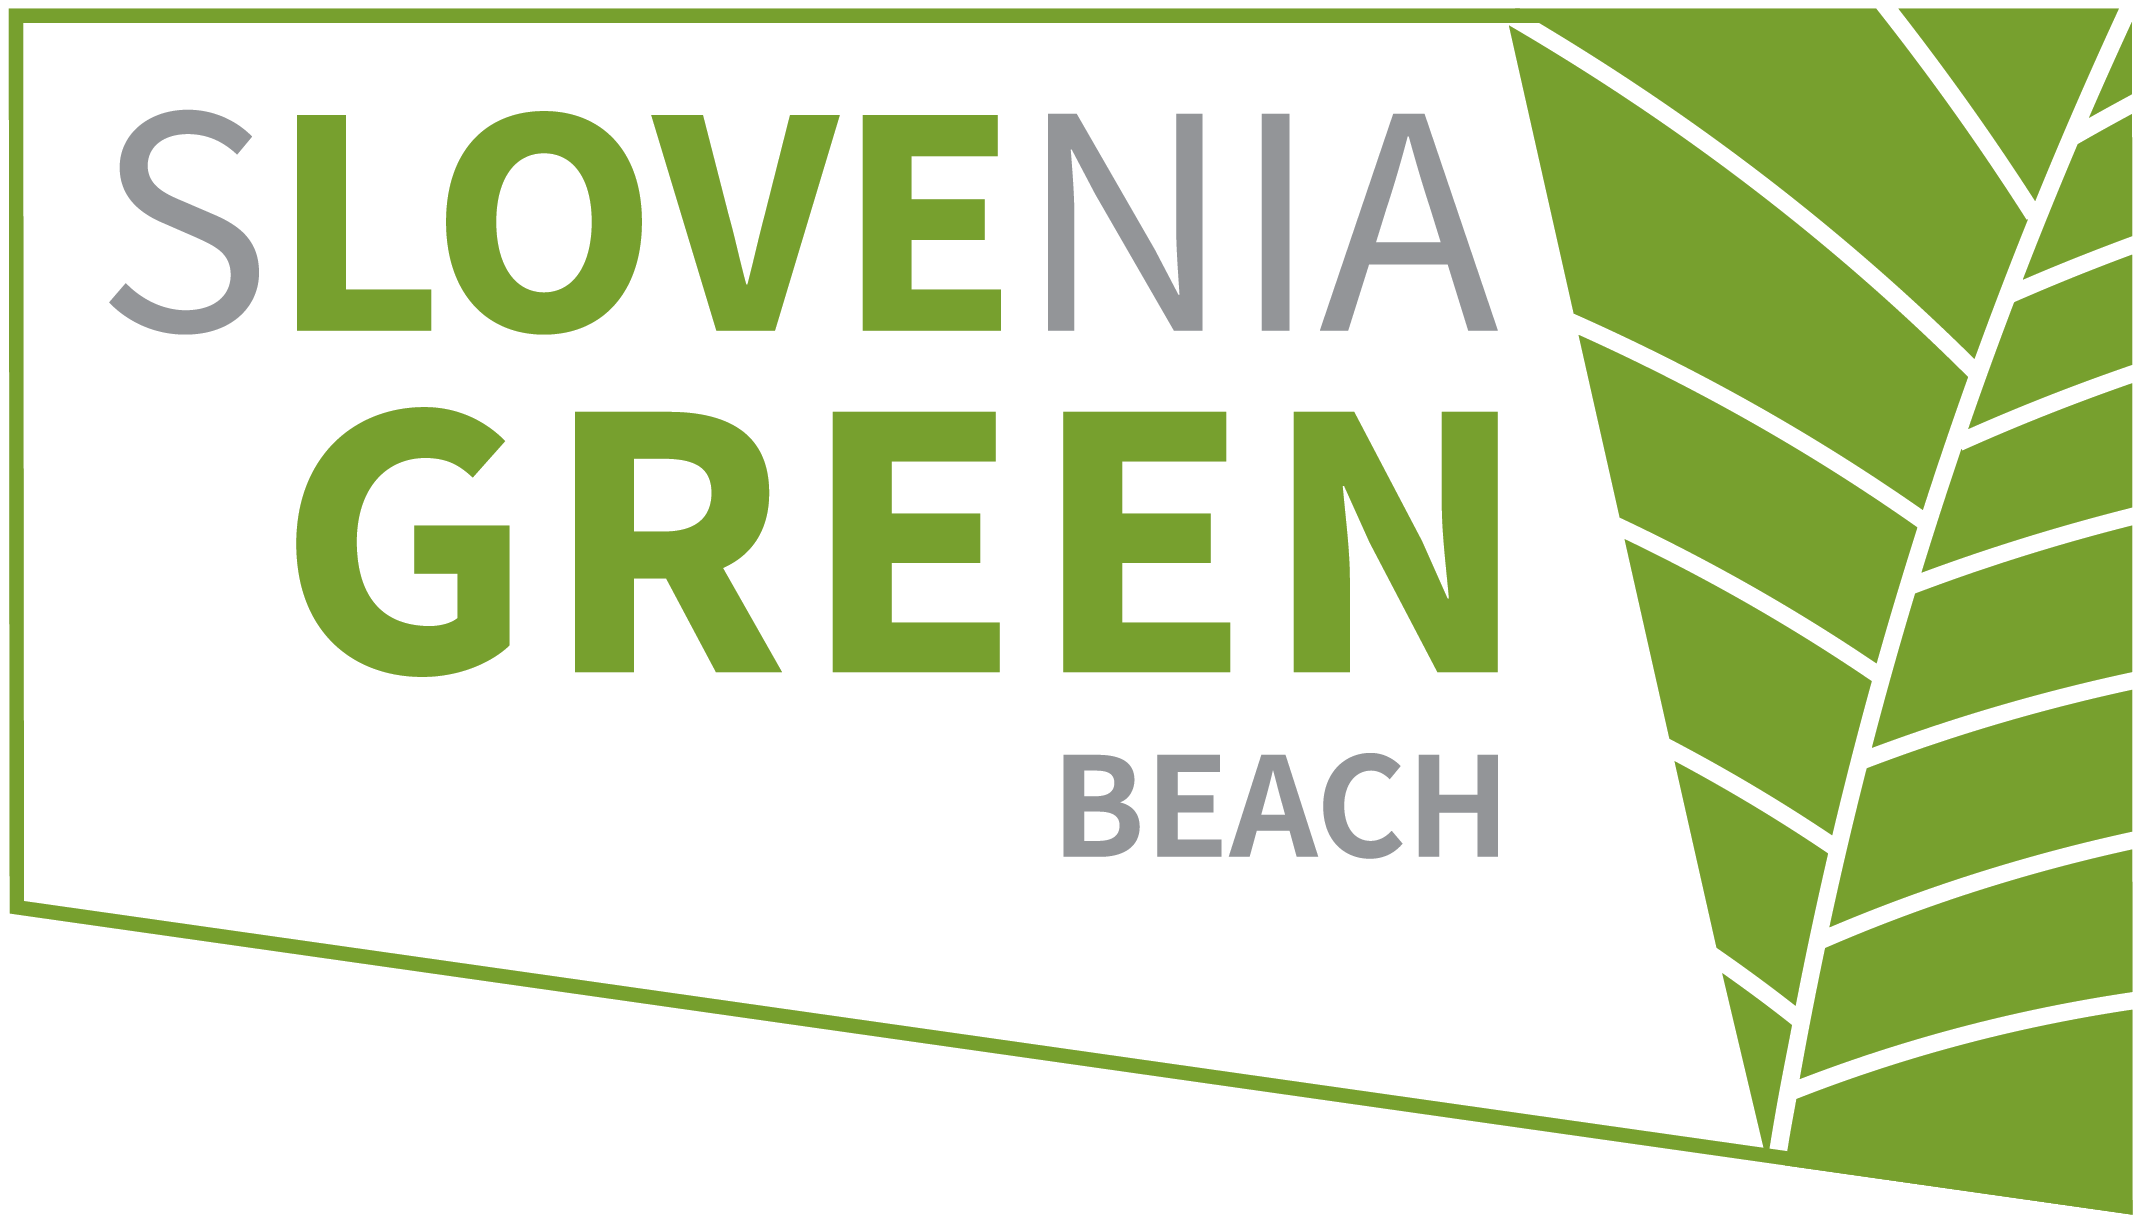 slovenia-green-beach